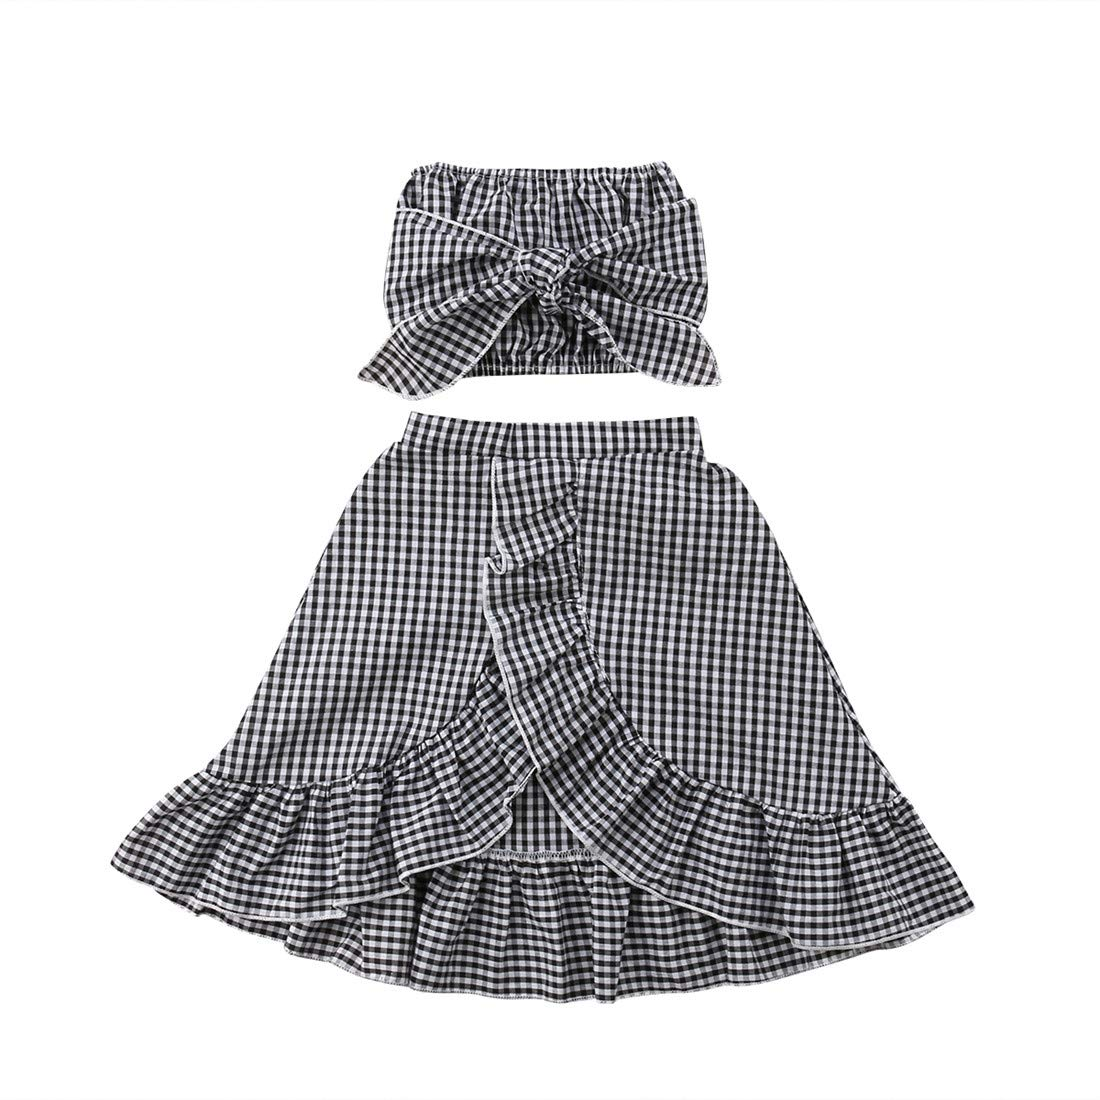 Baby Girl Toddler 2/3 Sleeve Black Crop Top + Grey Shorts Bowknot Skirts Outfit Clothes 2Pcs/ Set (Plaid, 6-12 Months)